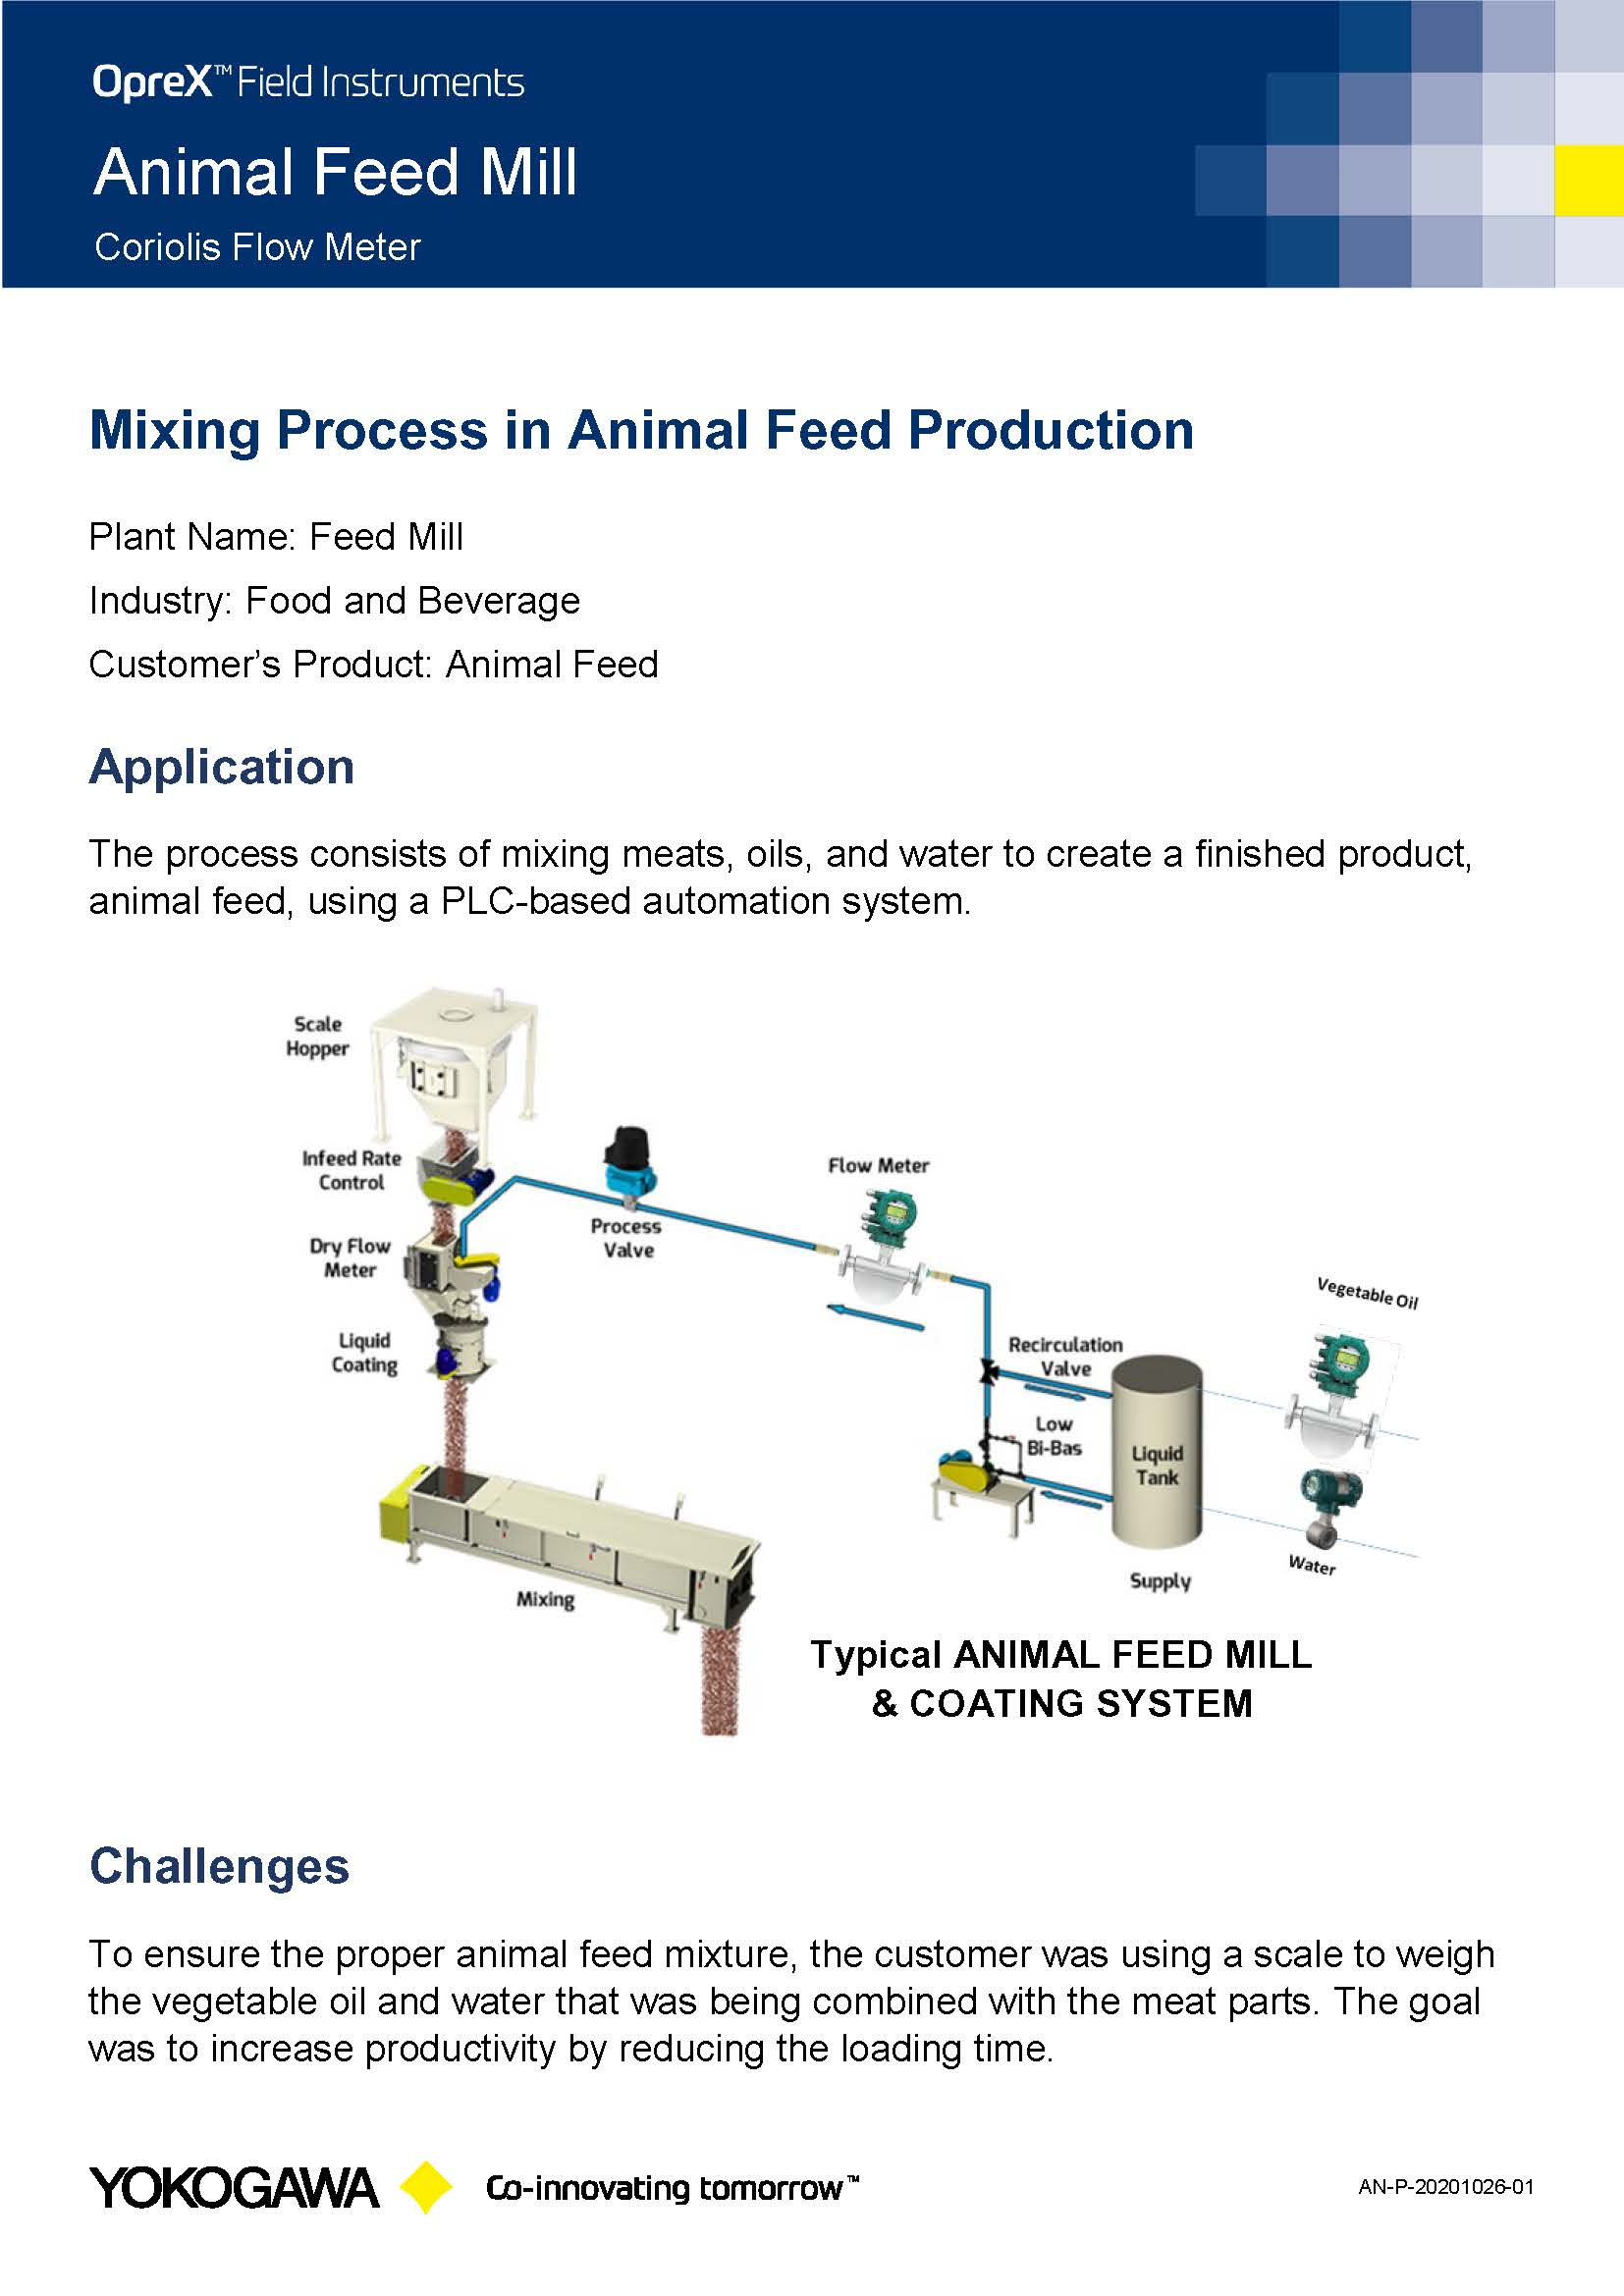 Animal Feed Mill